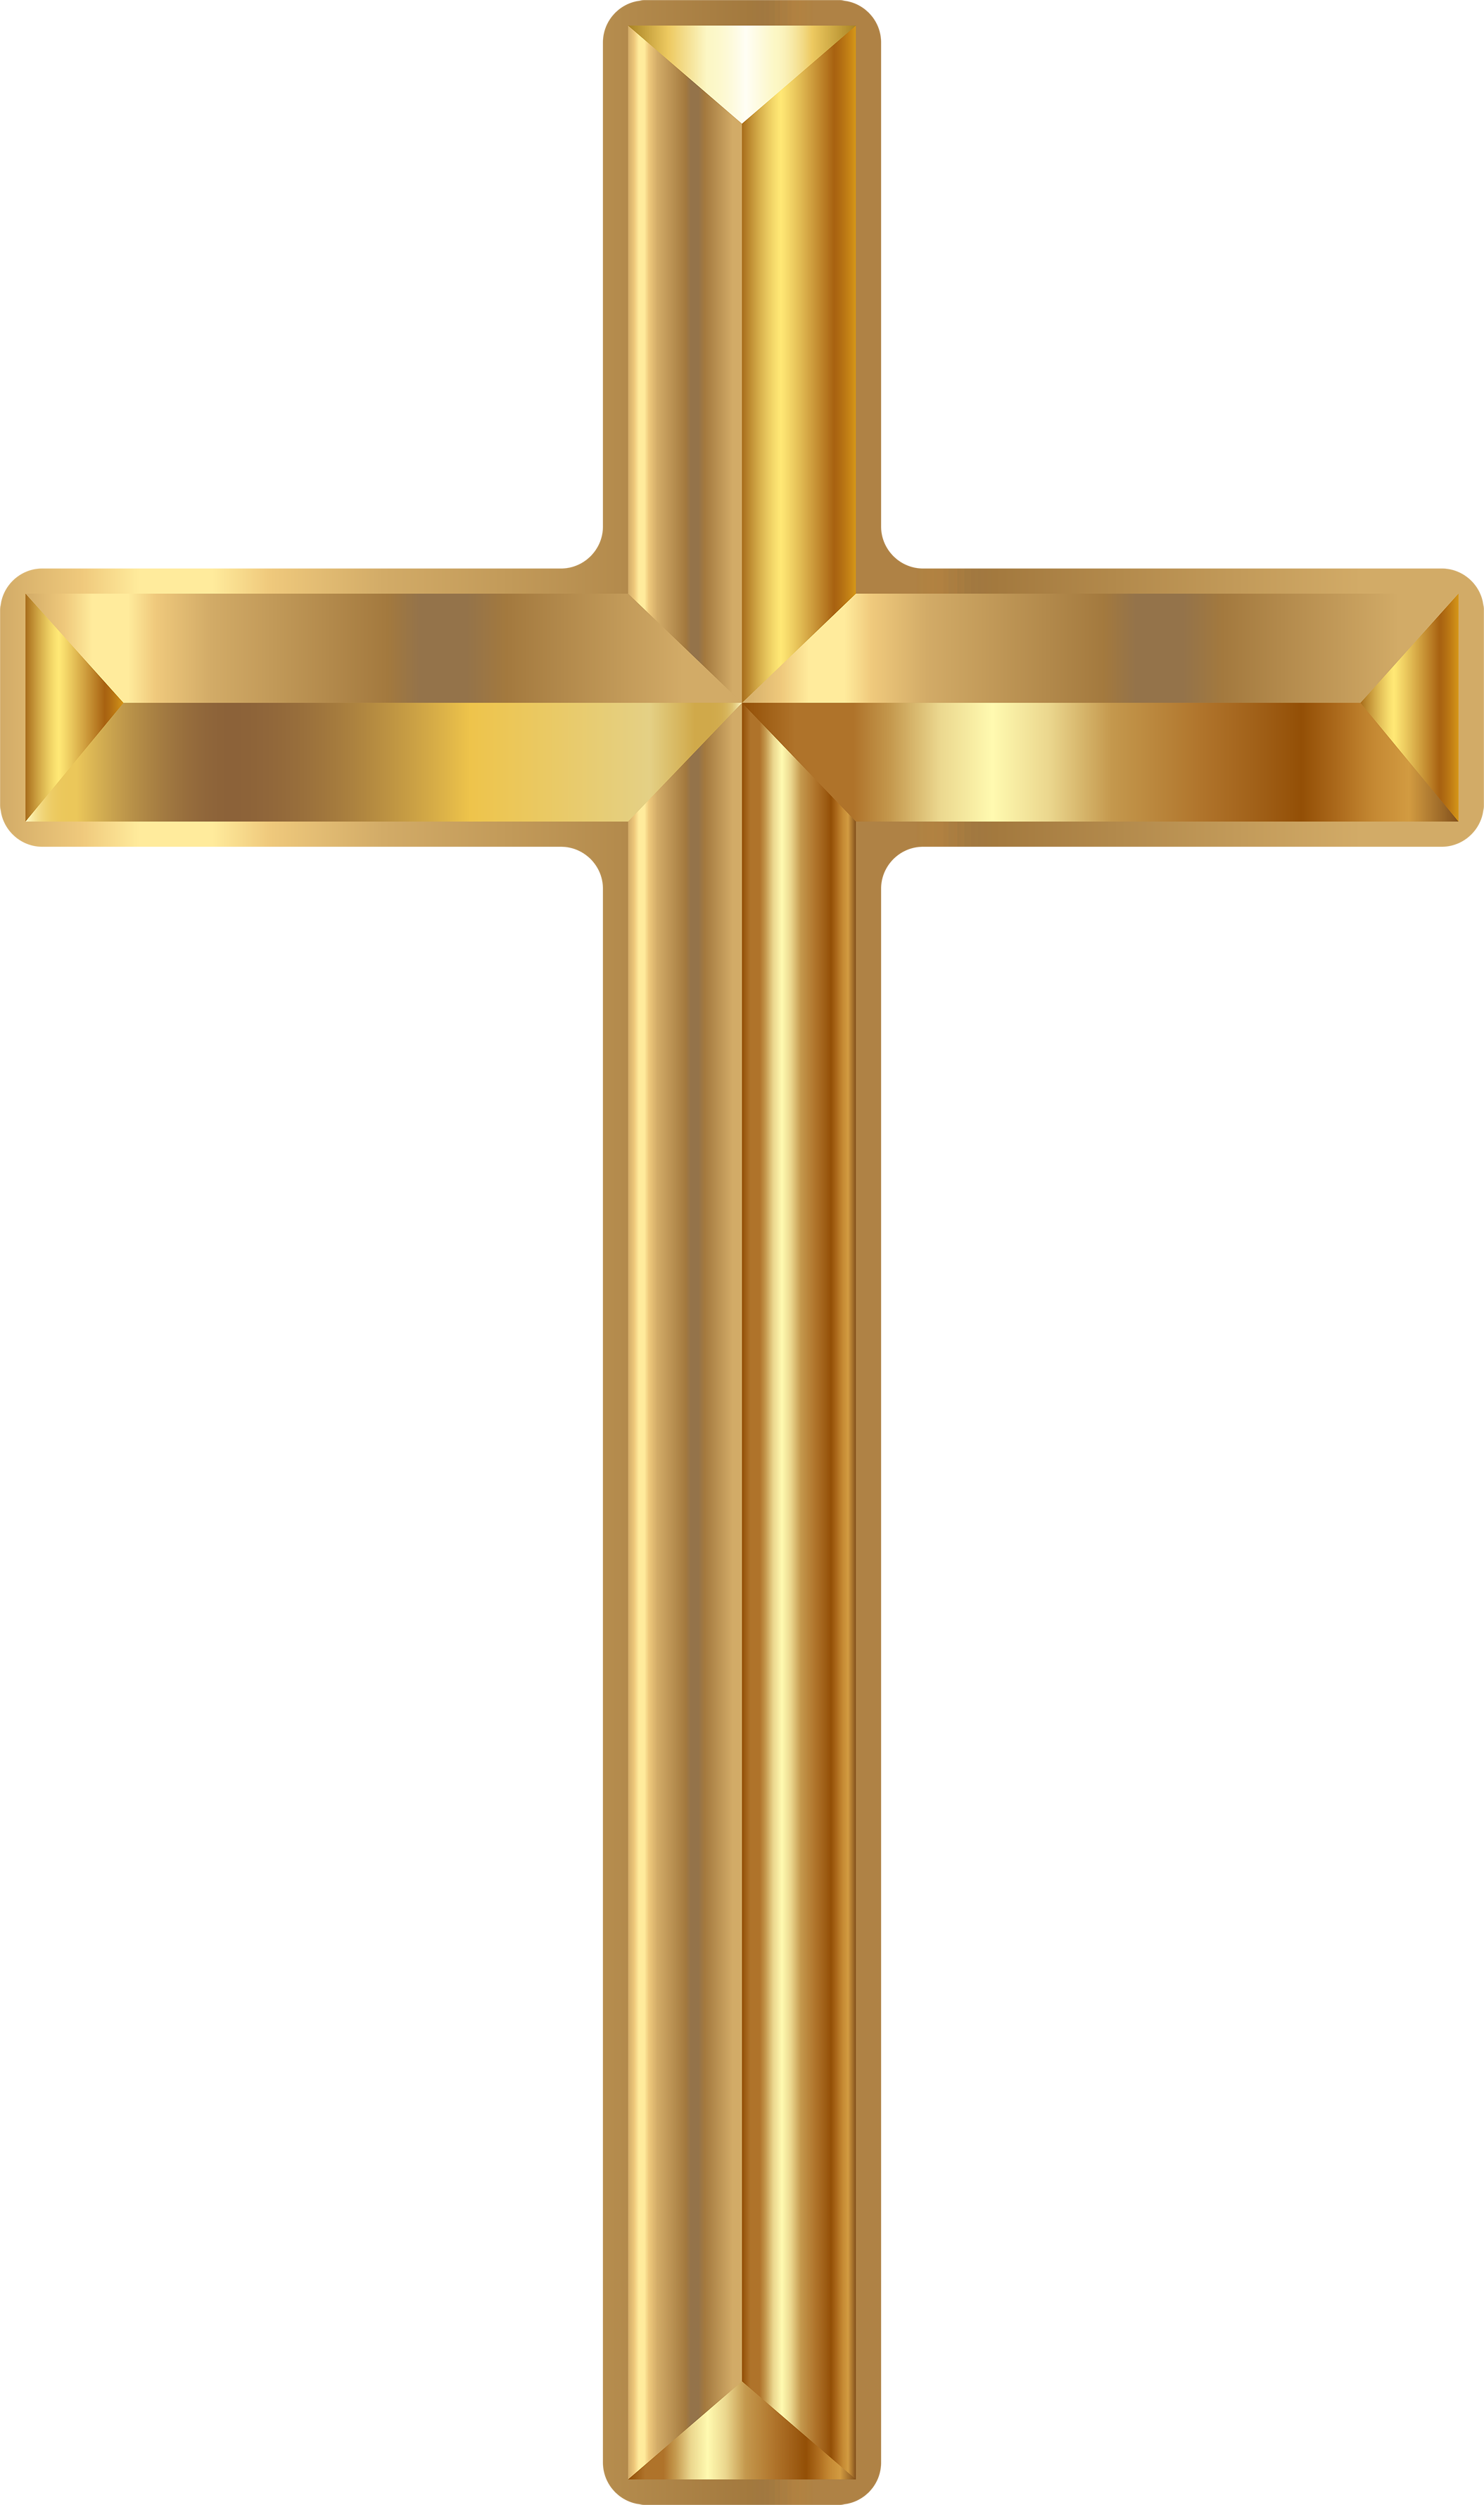 Image Result For Cross With No Background Salib Gambar Wallpaper Ponsel